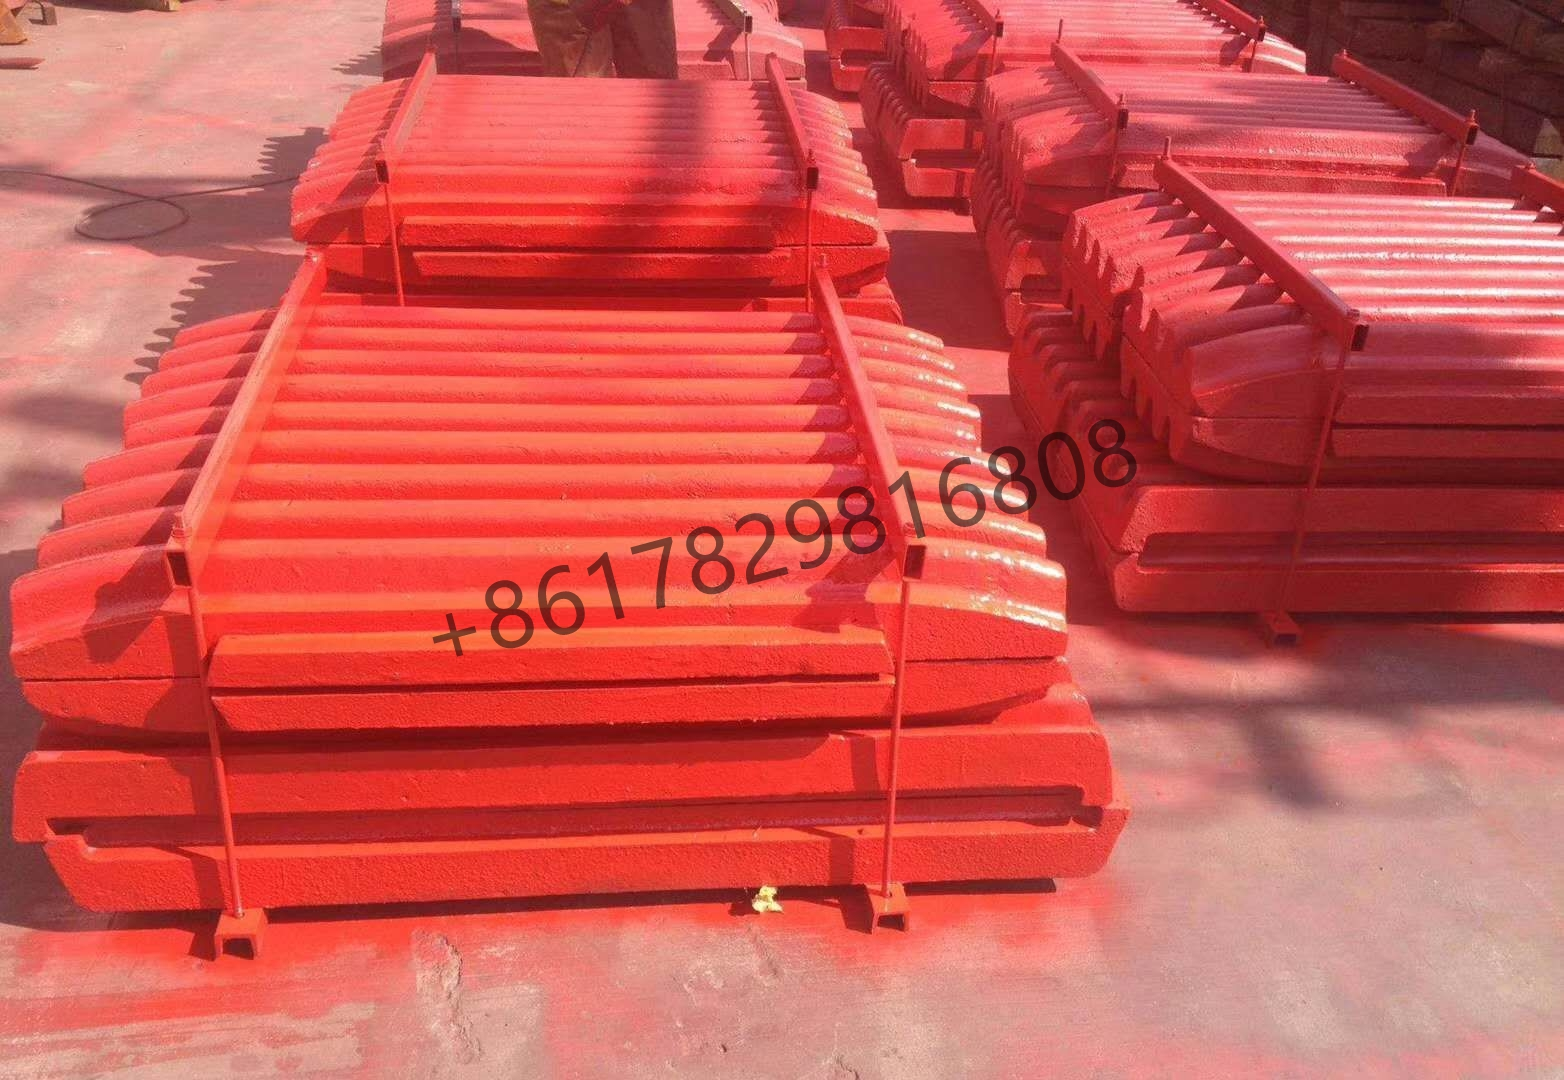 Manganese Casting Liming Sbm Shanbao Jaw Crusher Parts Tooth/Jaw Plate